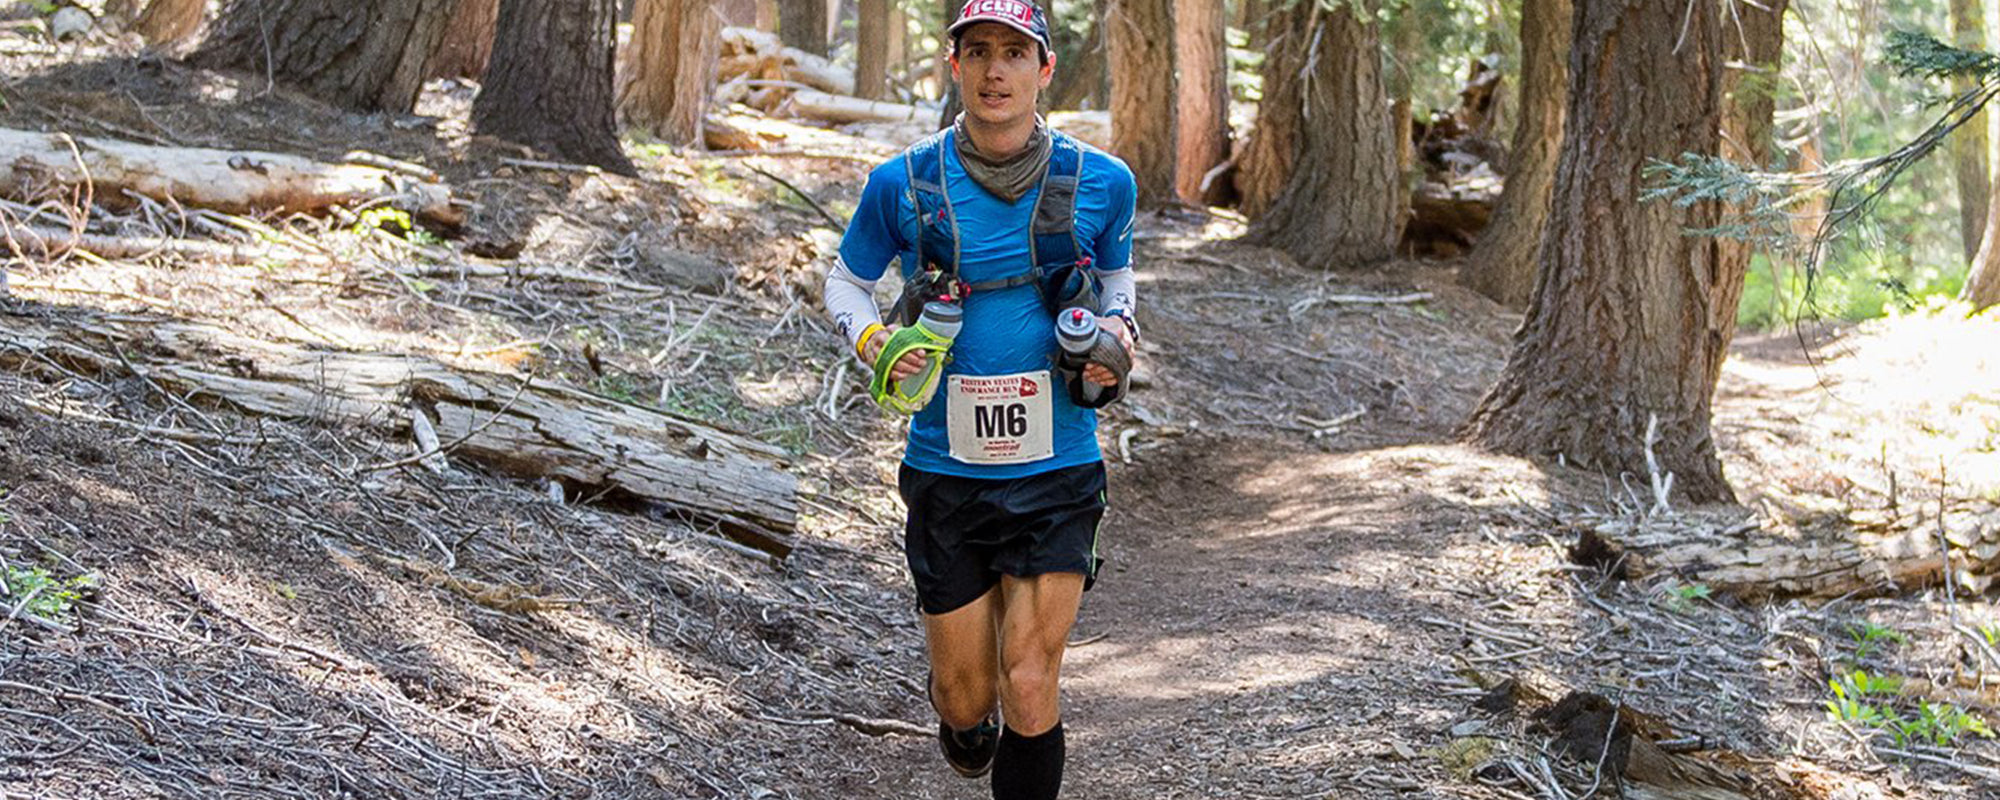 Q&A with Professional Ultrarunner Ian Sharman